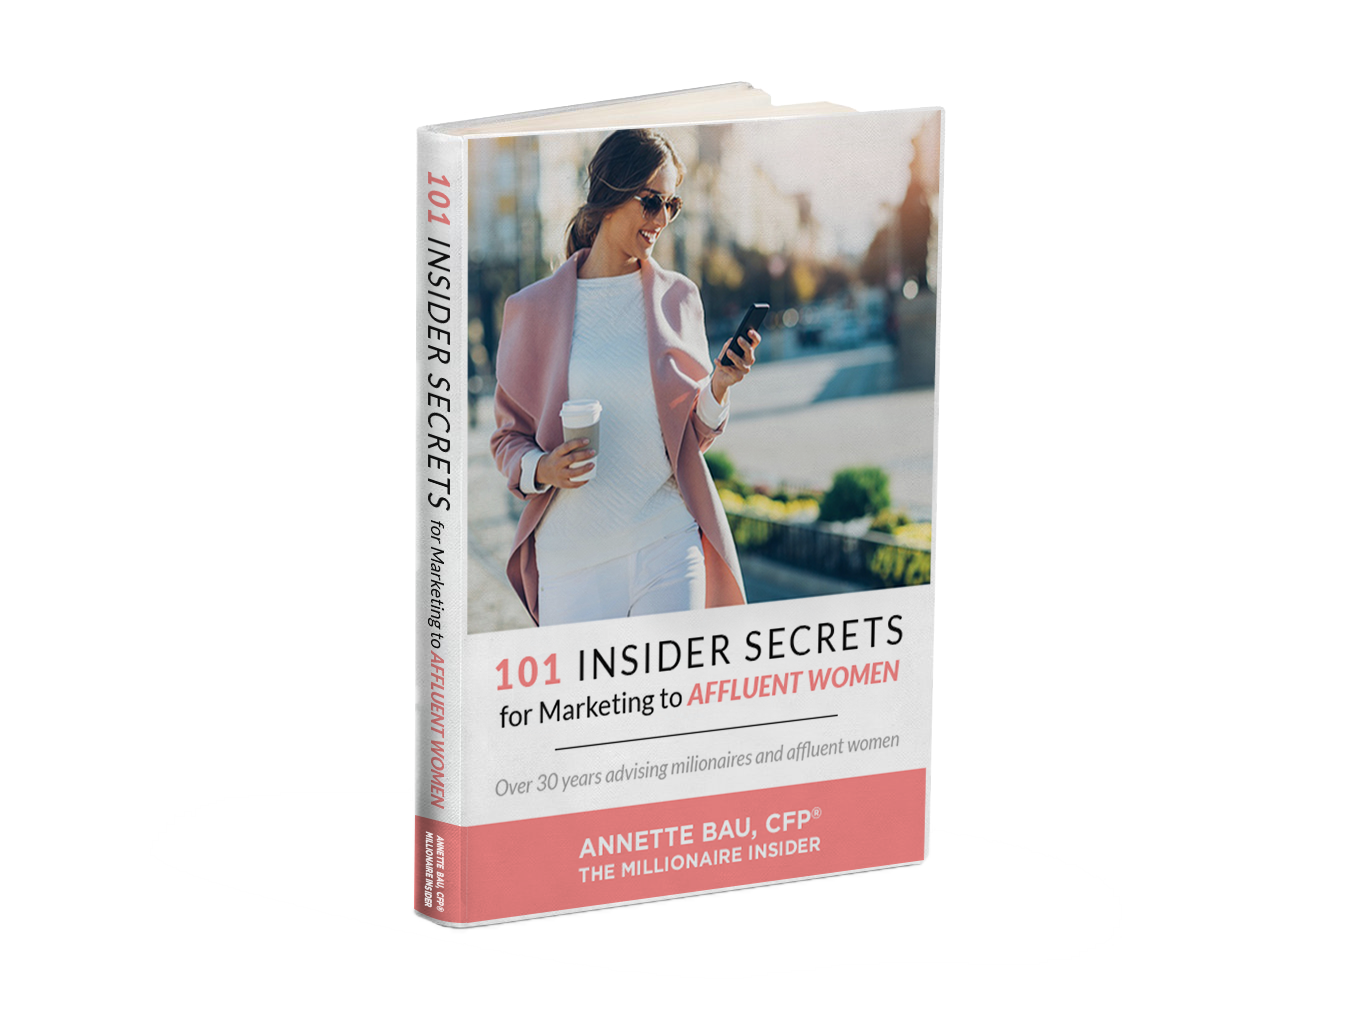 101 Insider Secrets for Marketing to Affluent Women